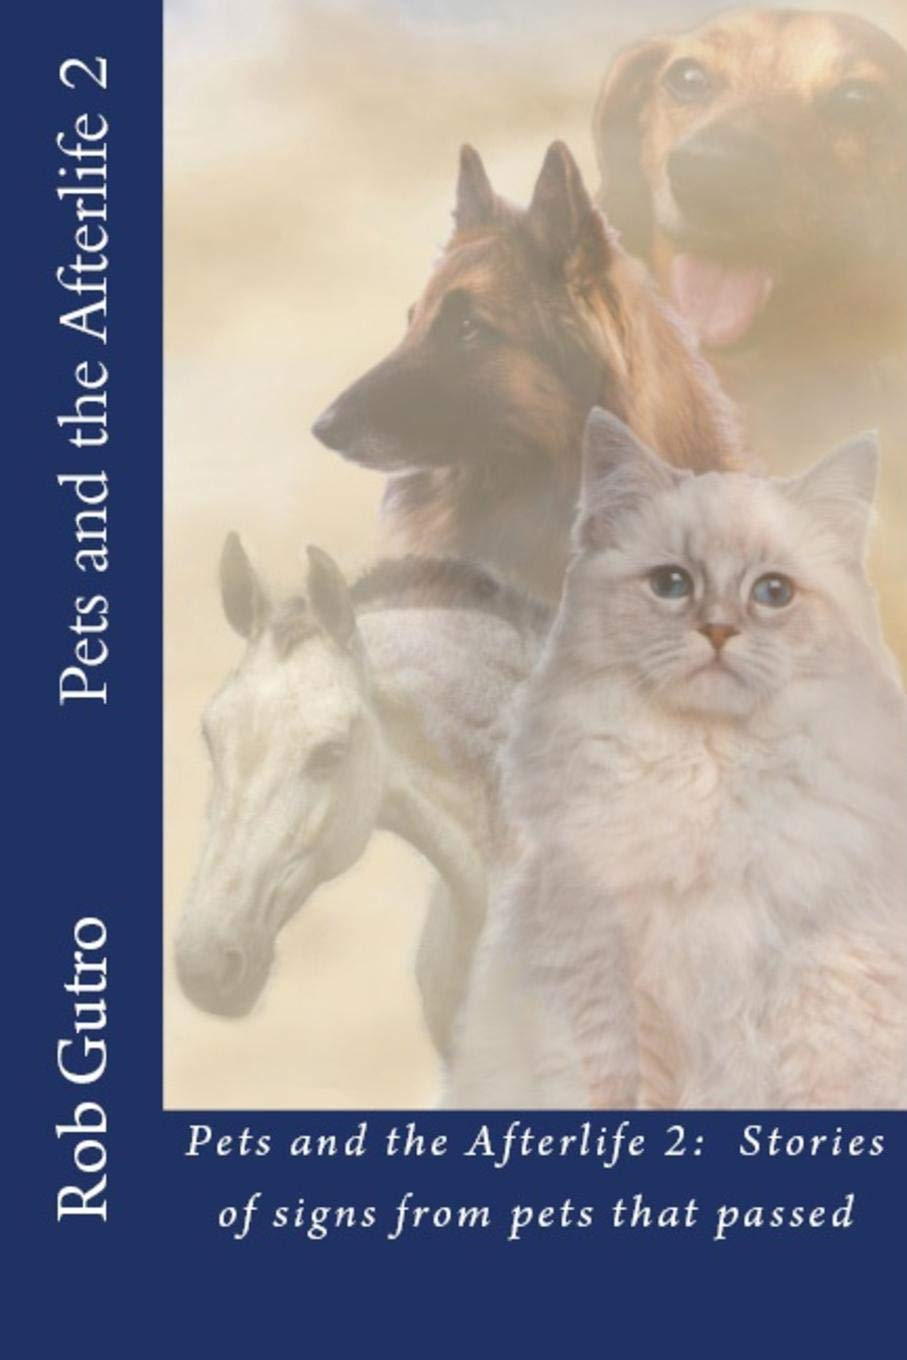 Amazon.com: Pets and the Afterlife 2: Signs from Pets That ...